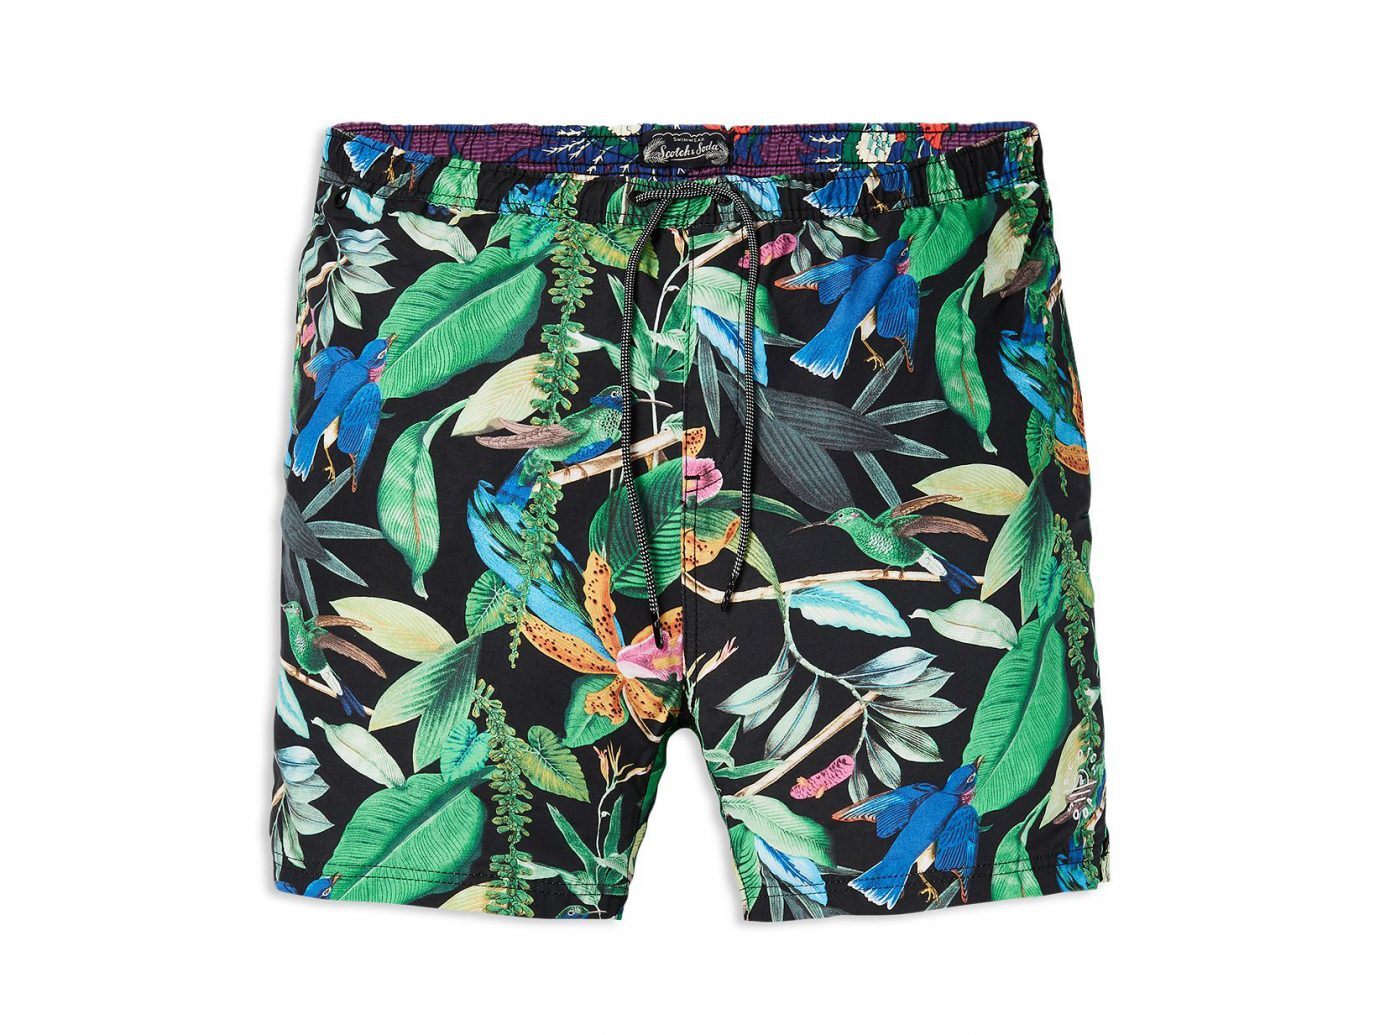 Scotch & Soda Floral Swim Trunks